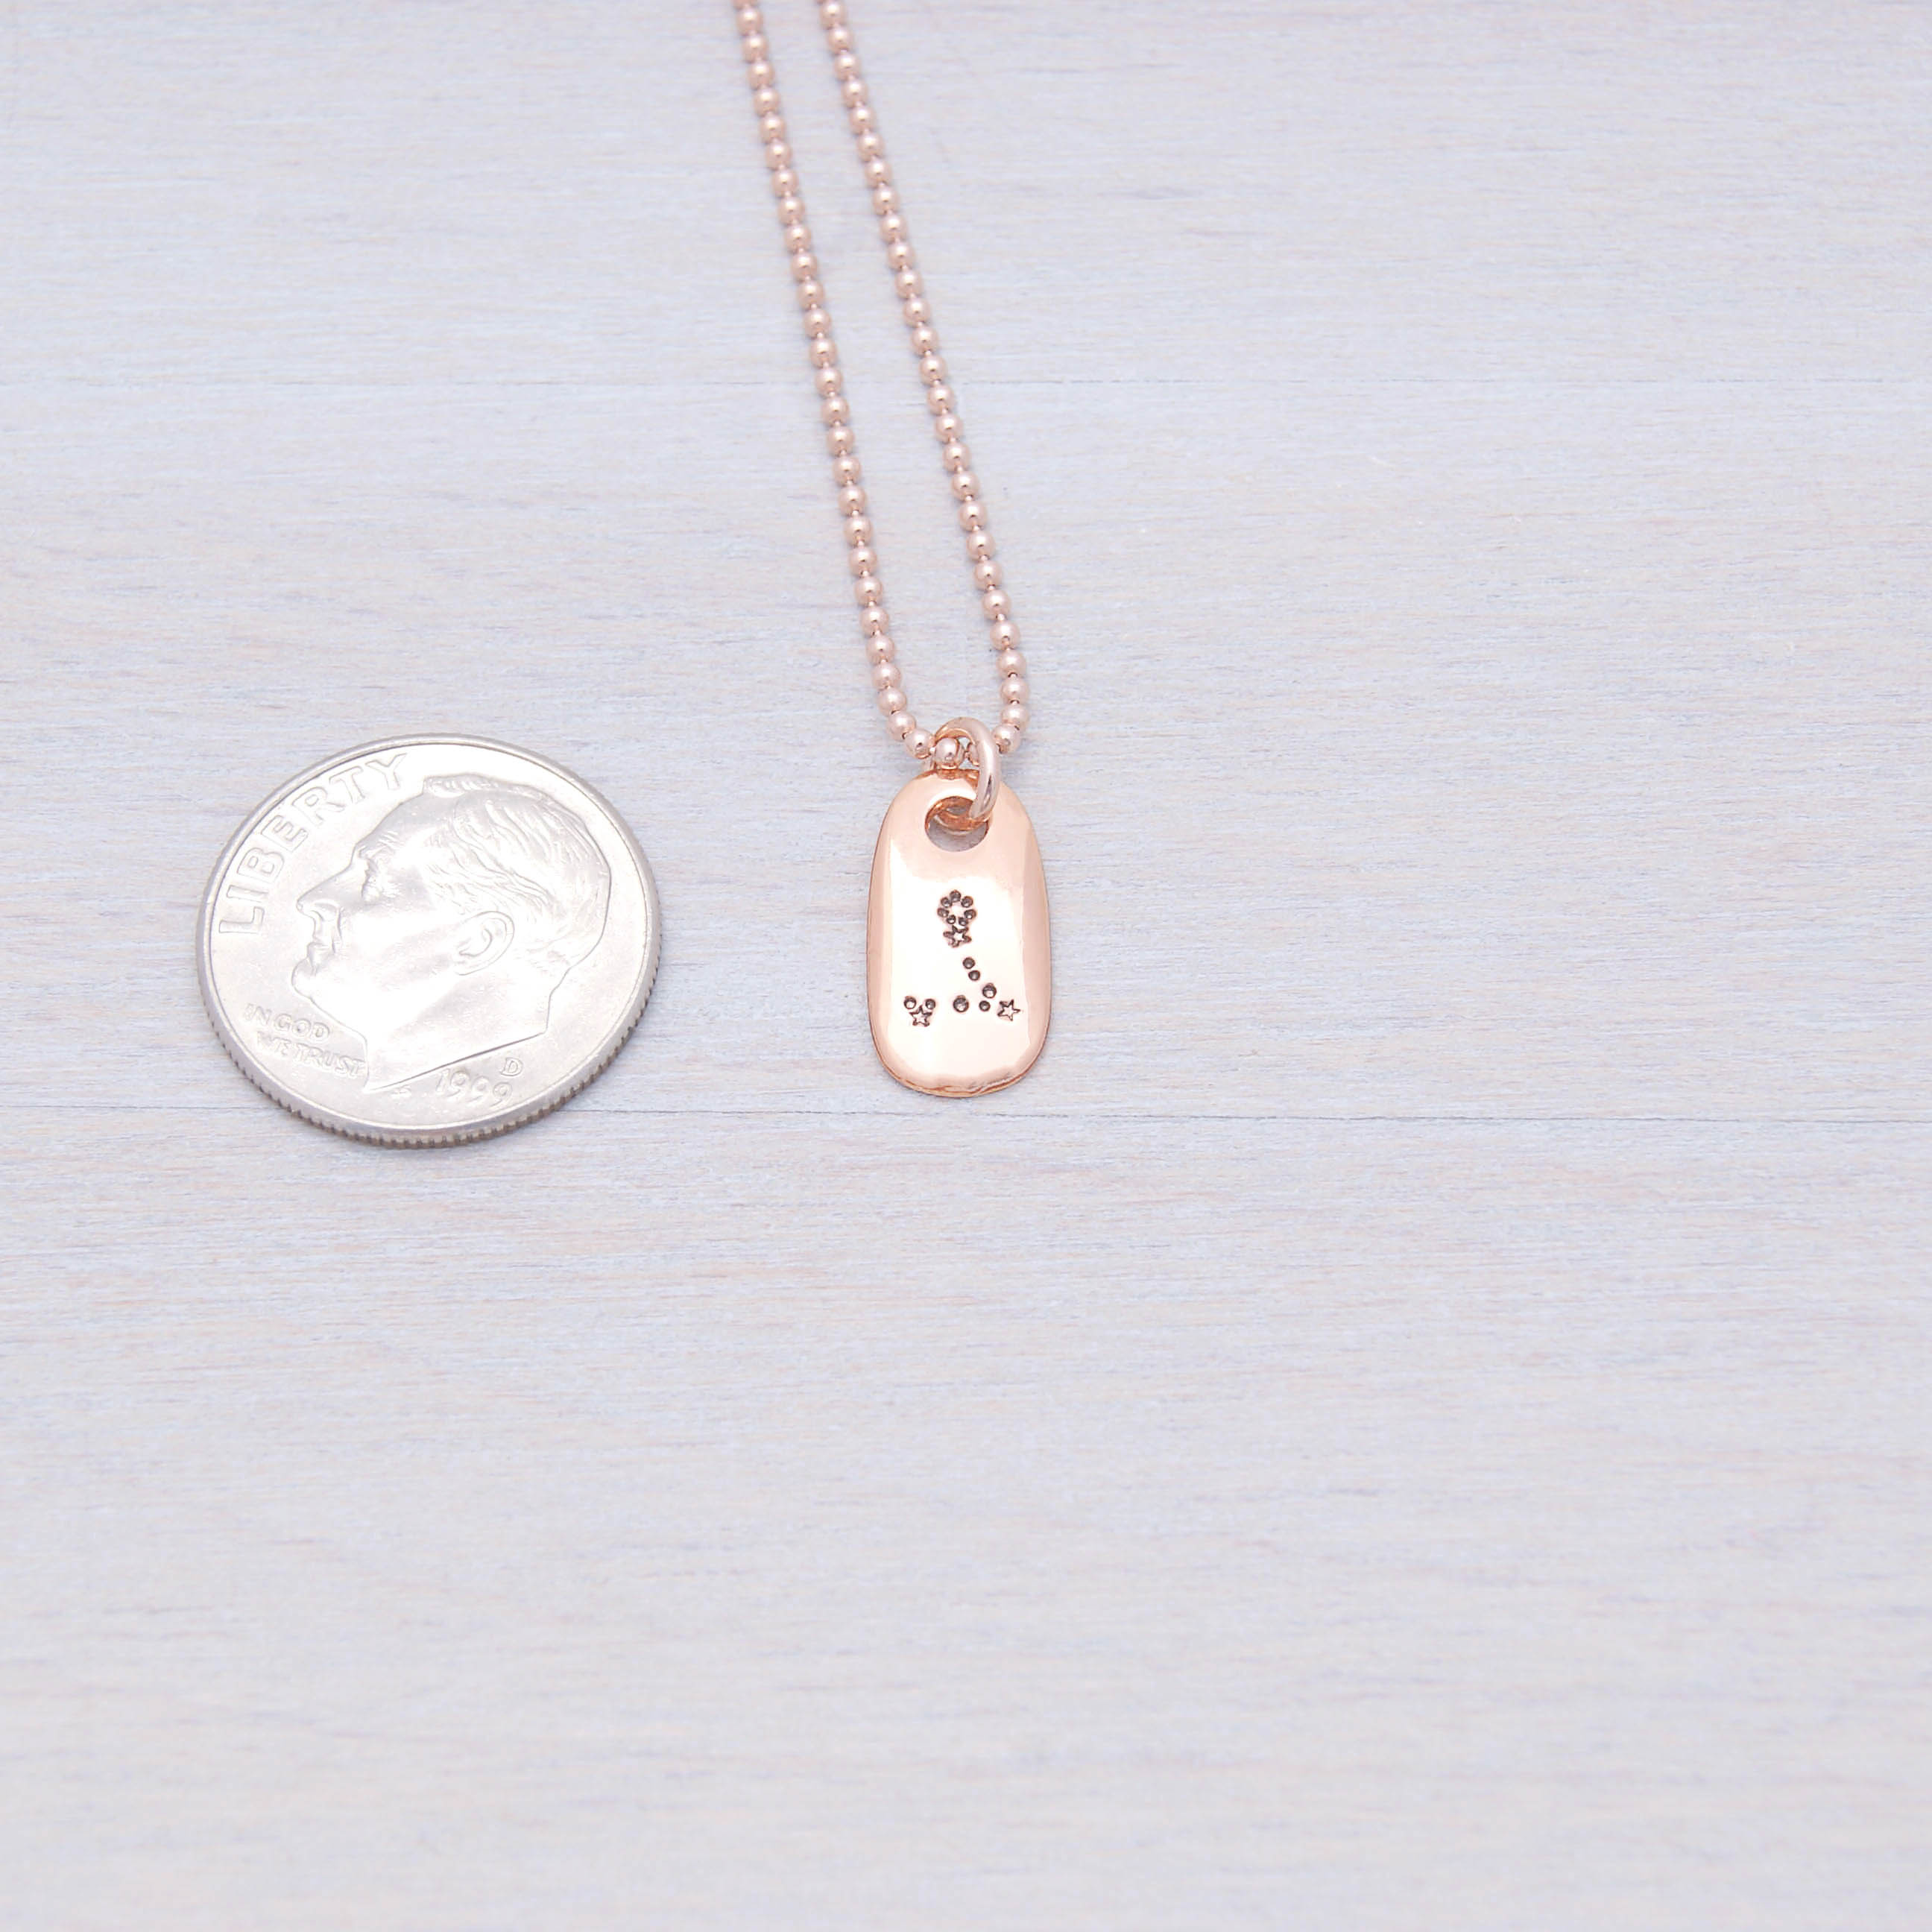 Pisces Constellation Zodiac Rose Gold Necklace